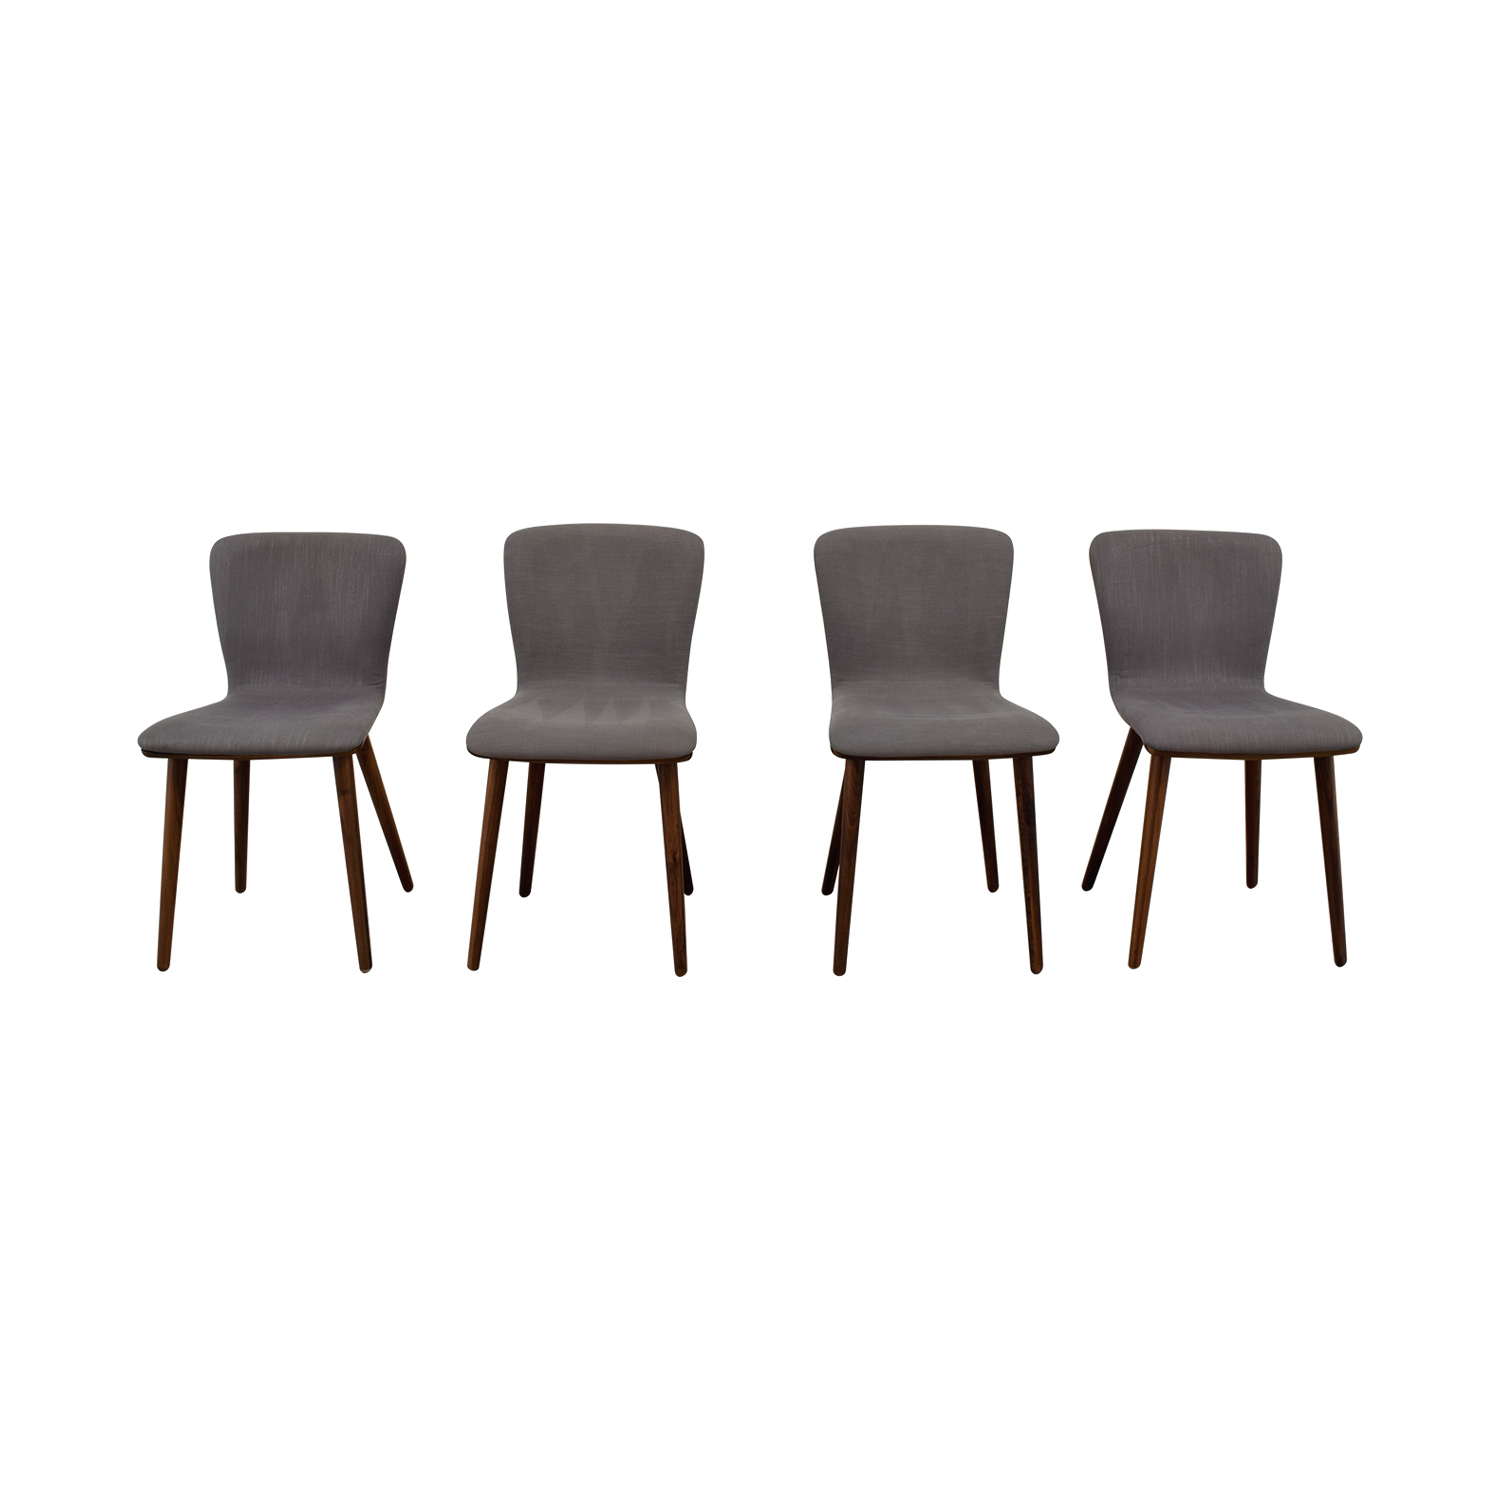 Article Article Sede Thunder Gray Walnut Dining Chairs dimensions